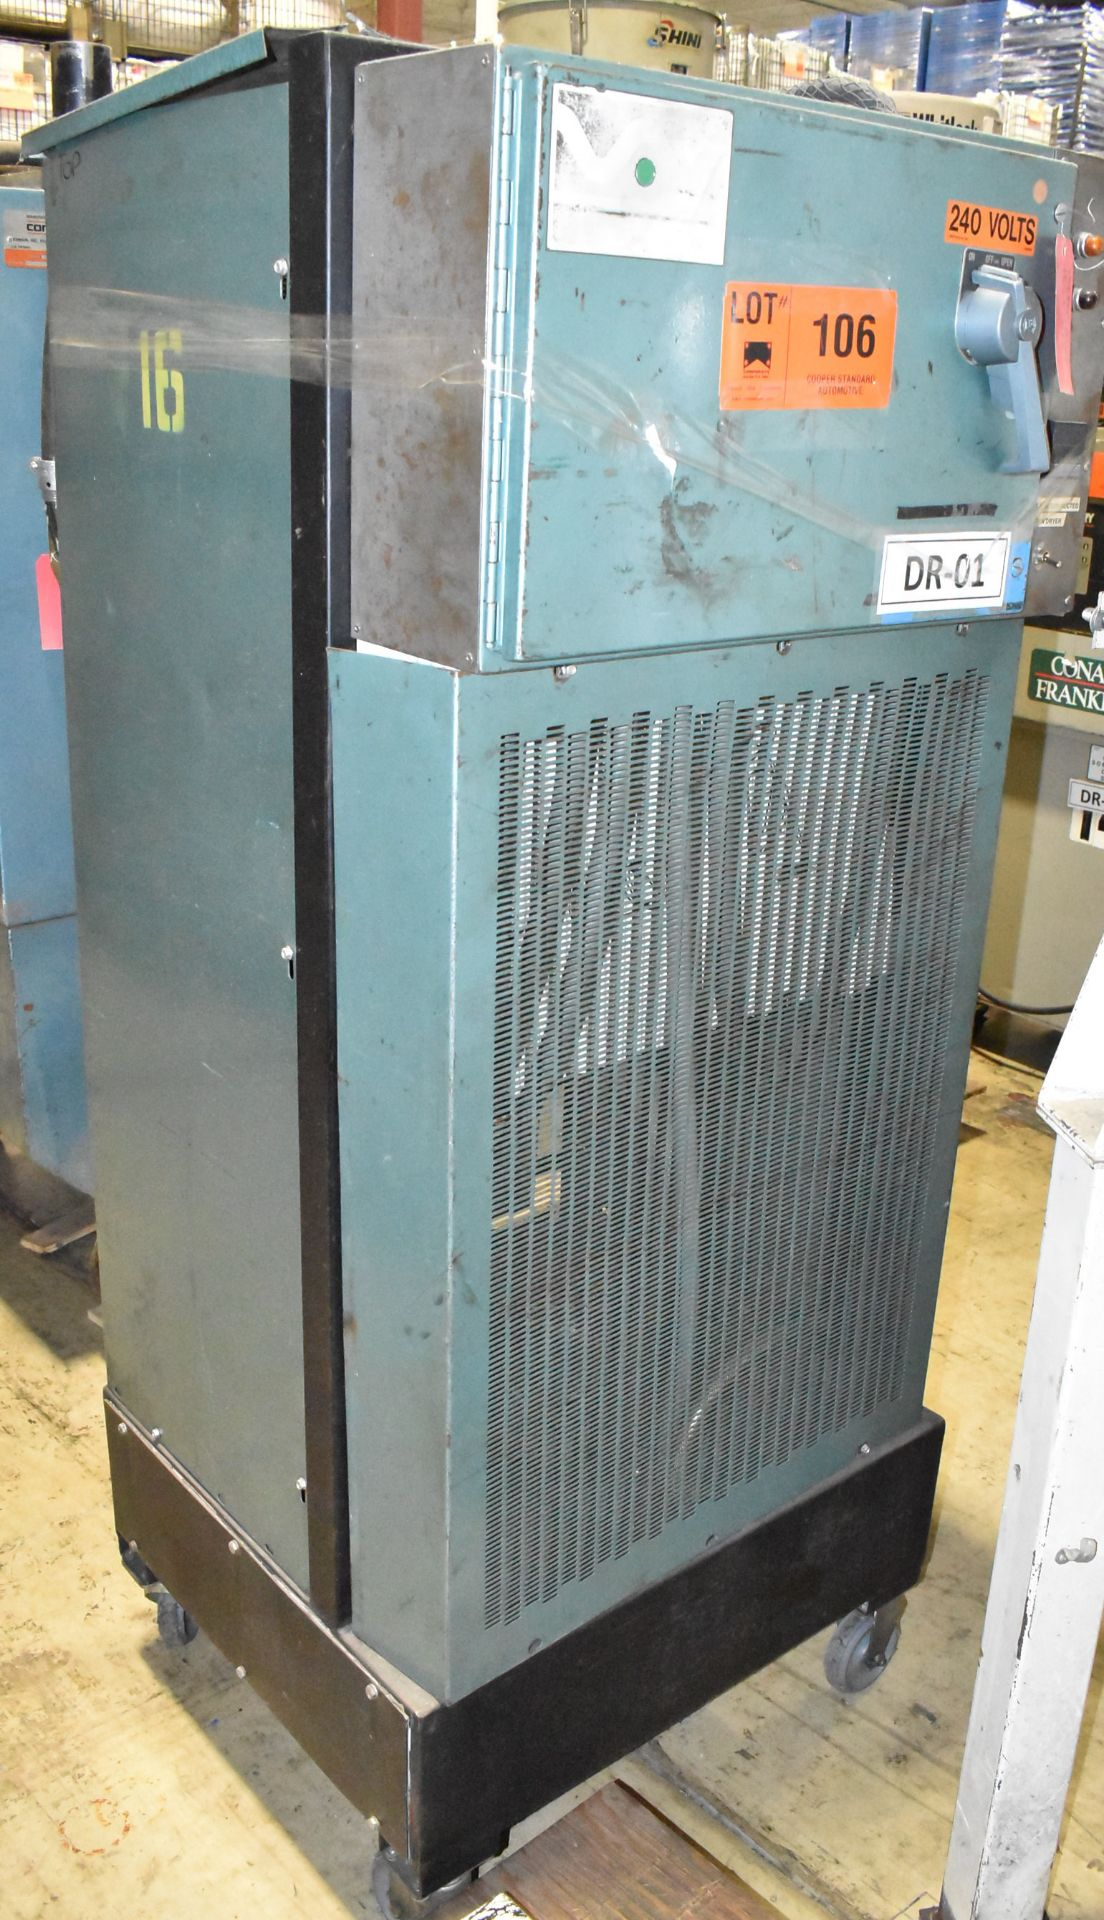 WHITLOCK 50CL DEHUMIDIFYING DRYER, S/N: 7810148 (LOCATED IN BRAMPTON, ON) [RIGGING FEES FOR LOT #106